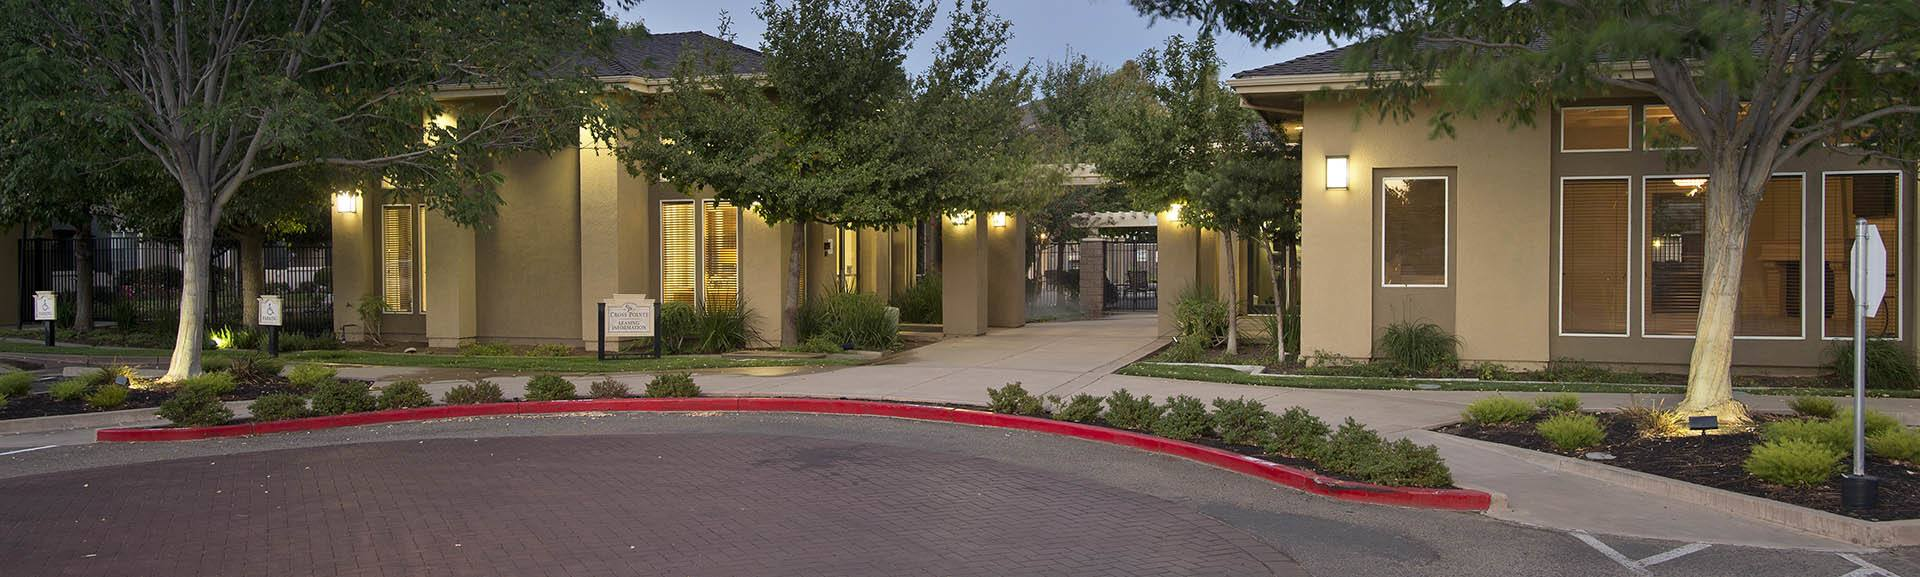 View photos of our luxurious property at Cross Pointe Apartment Homes in Antioch, CA